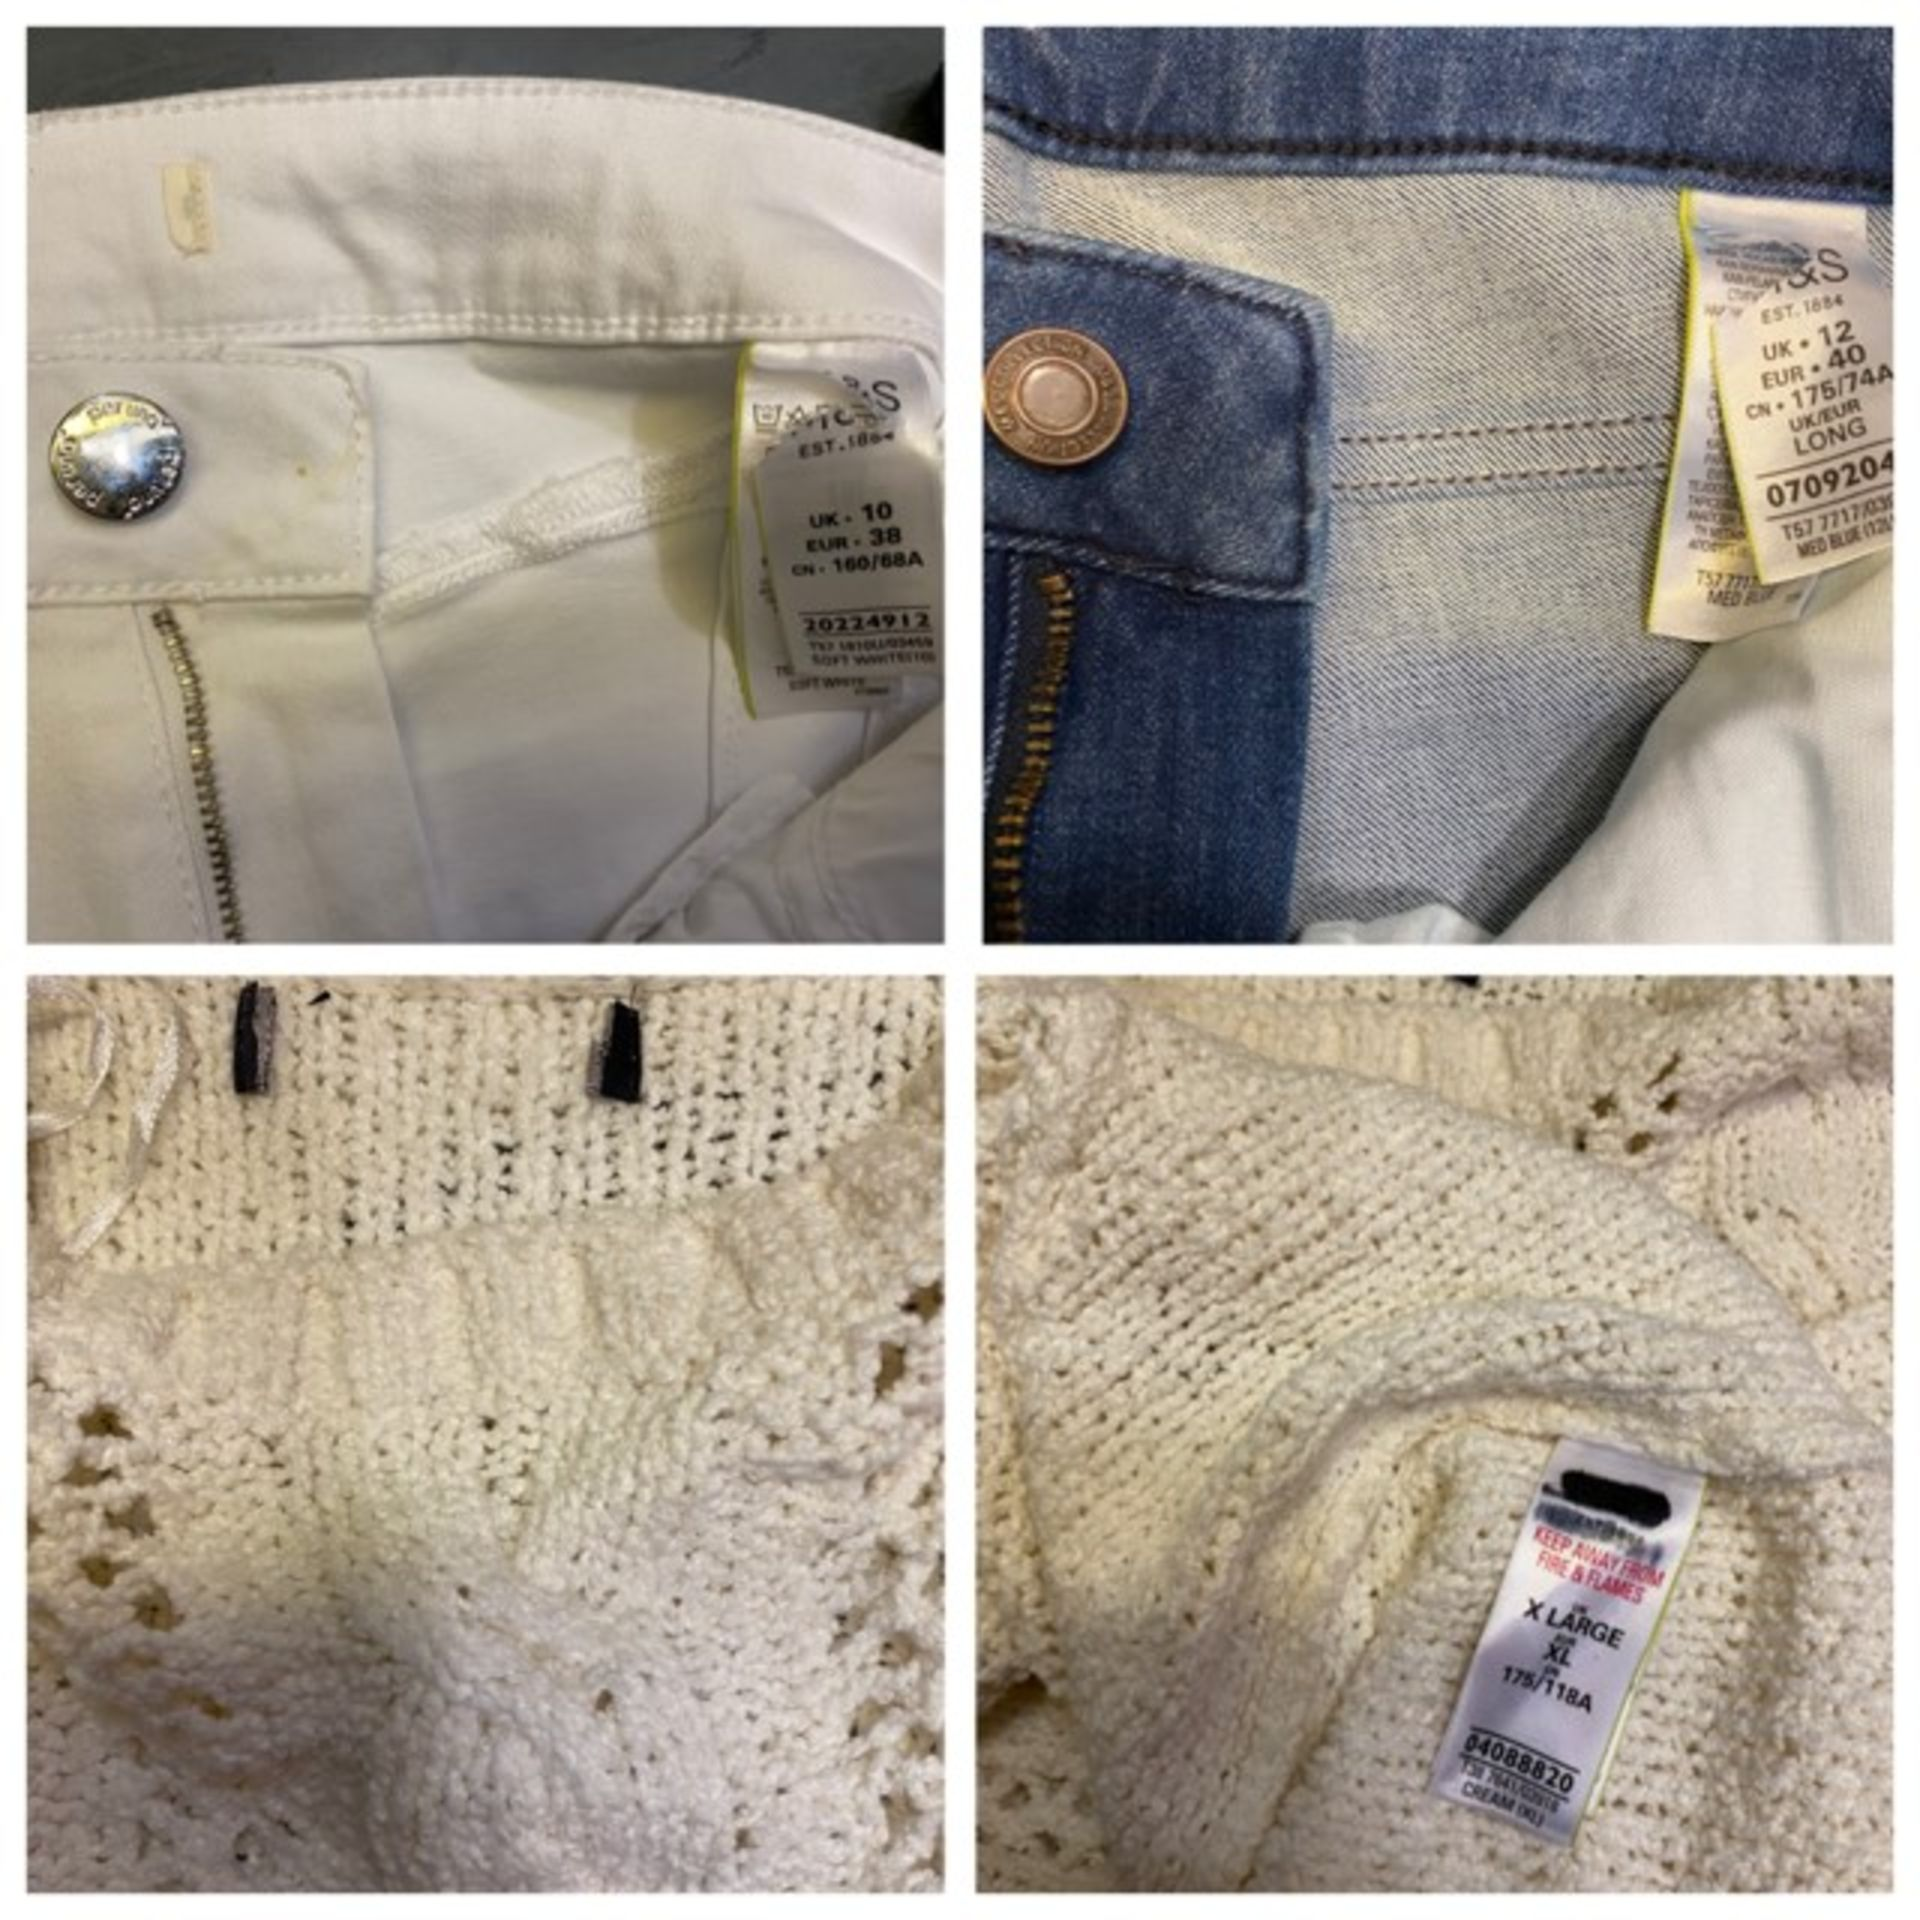 1 x mixed pallet = 94 items of Grade A M&S Menswear Clothing. Total RRP £2574 - Image 12 of 13